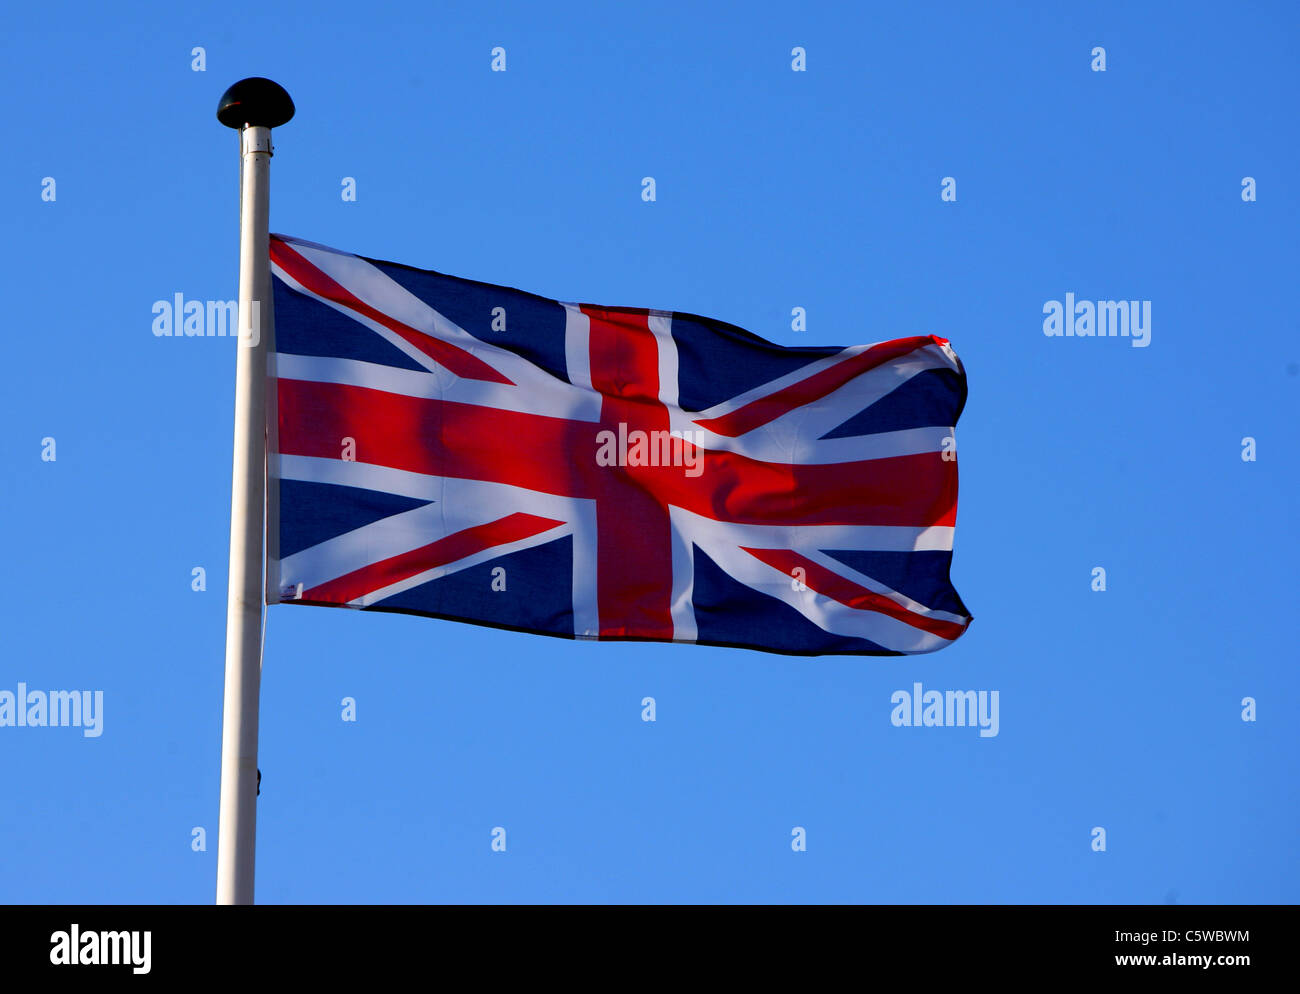 The British flag or Union Jack representing all the nations of the United Kingdom. Stock Photo